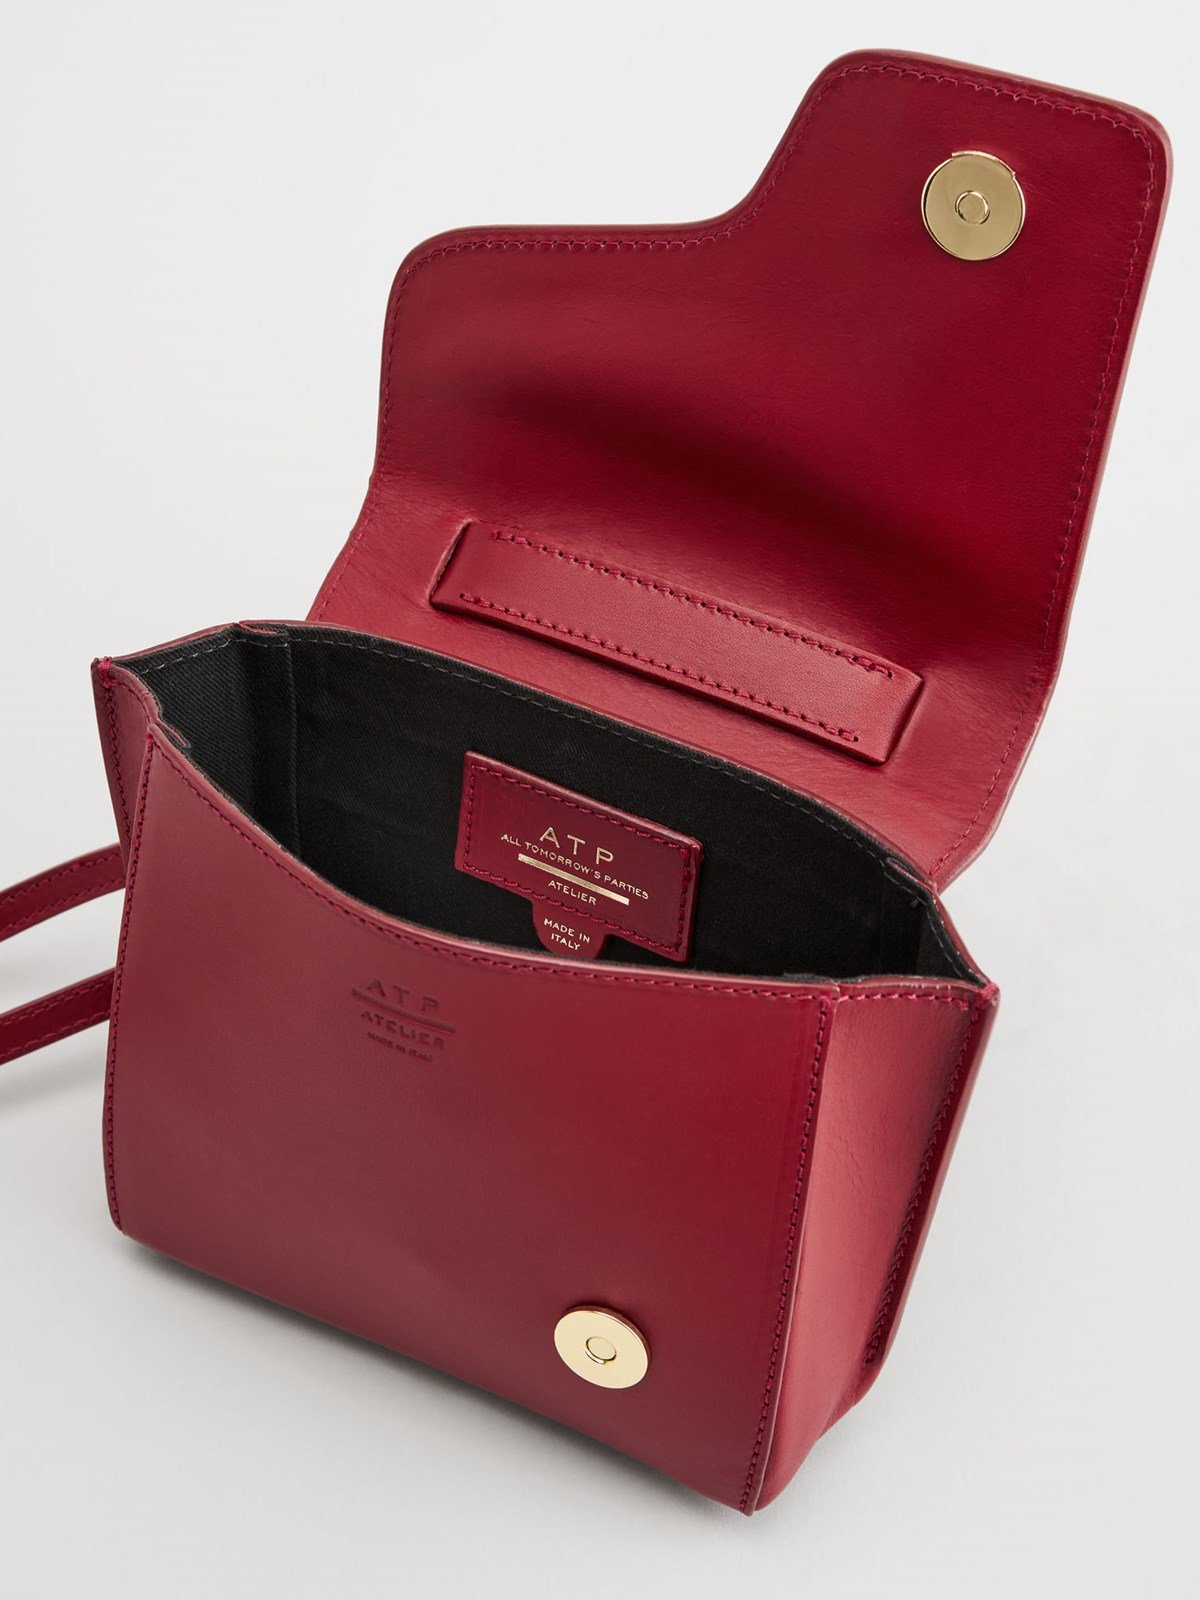 Montalcino Raspberry Mini handbag